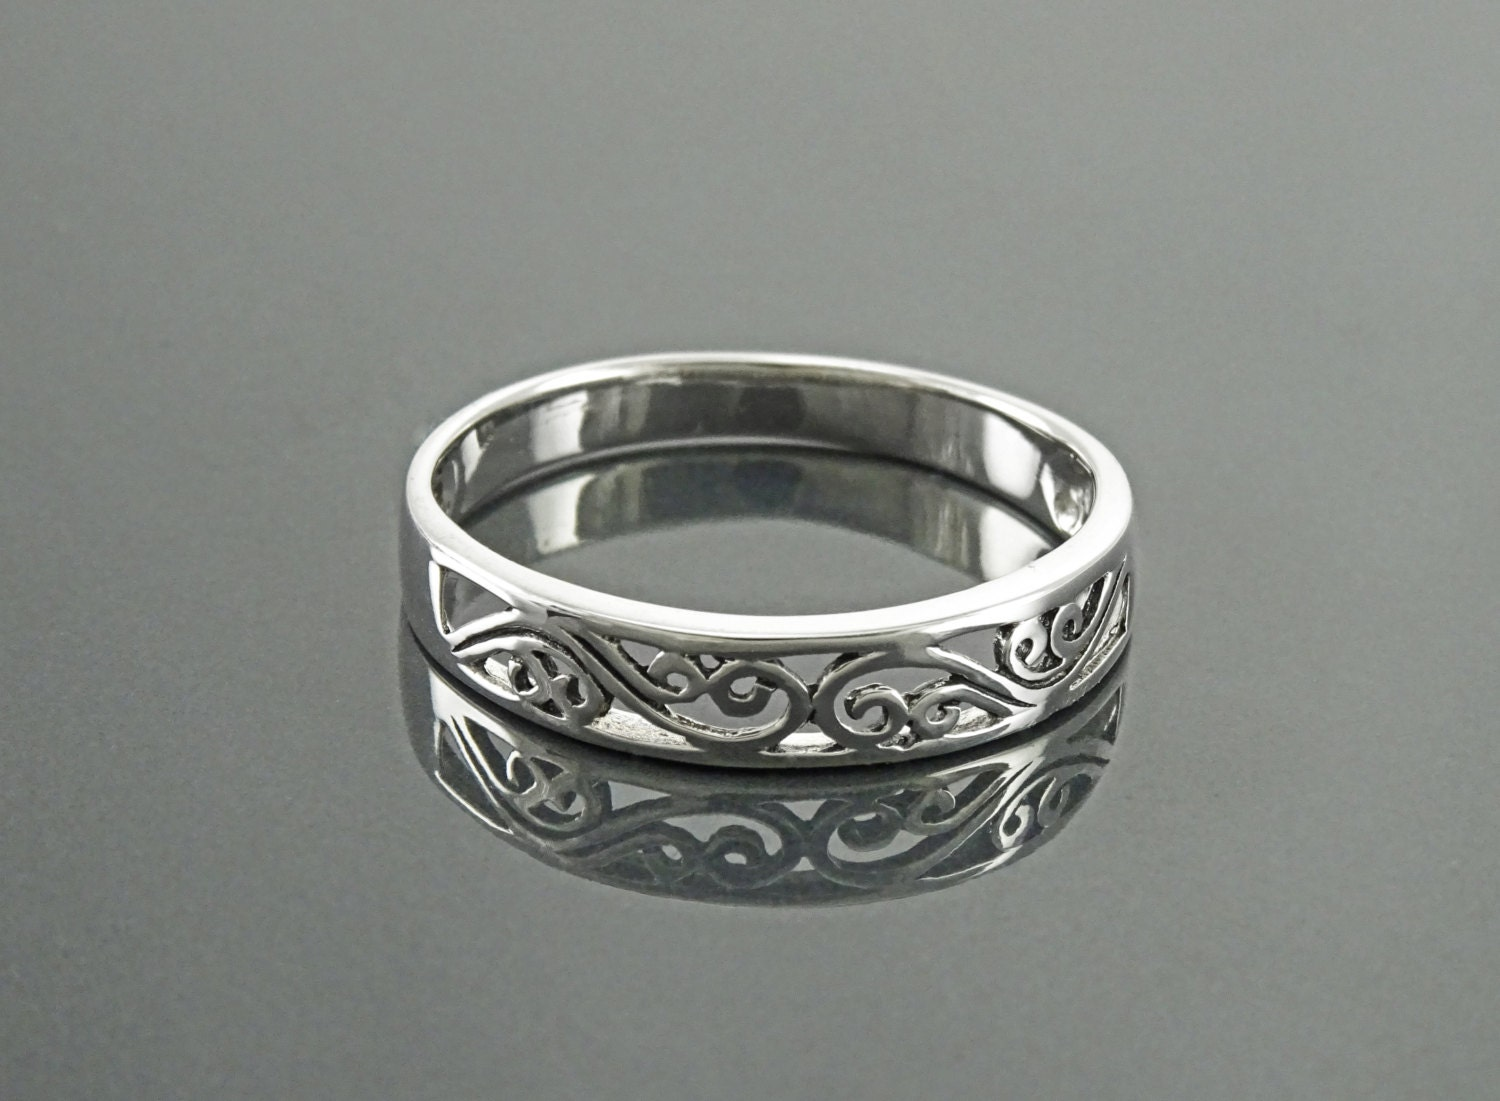 a99407257cd81 Filigree Band Ring, Sterling Silver, Art Nouveau Ring, Openwork Lace,  Promise Ring, Bridesmaid Gift, Stackable Ring, Midi Ring, Boho Jewelry